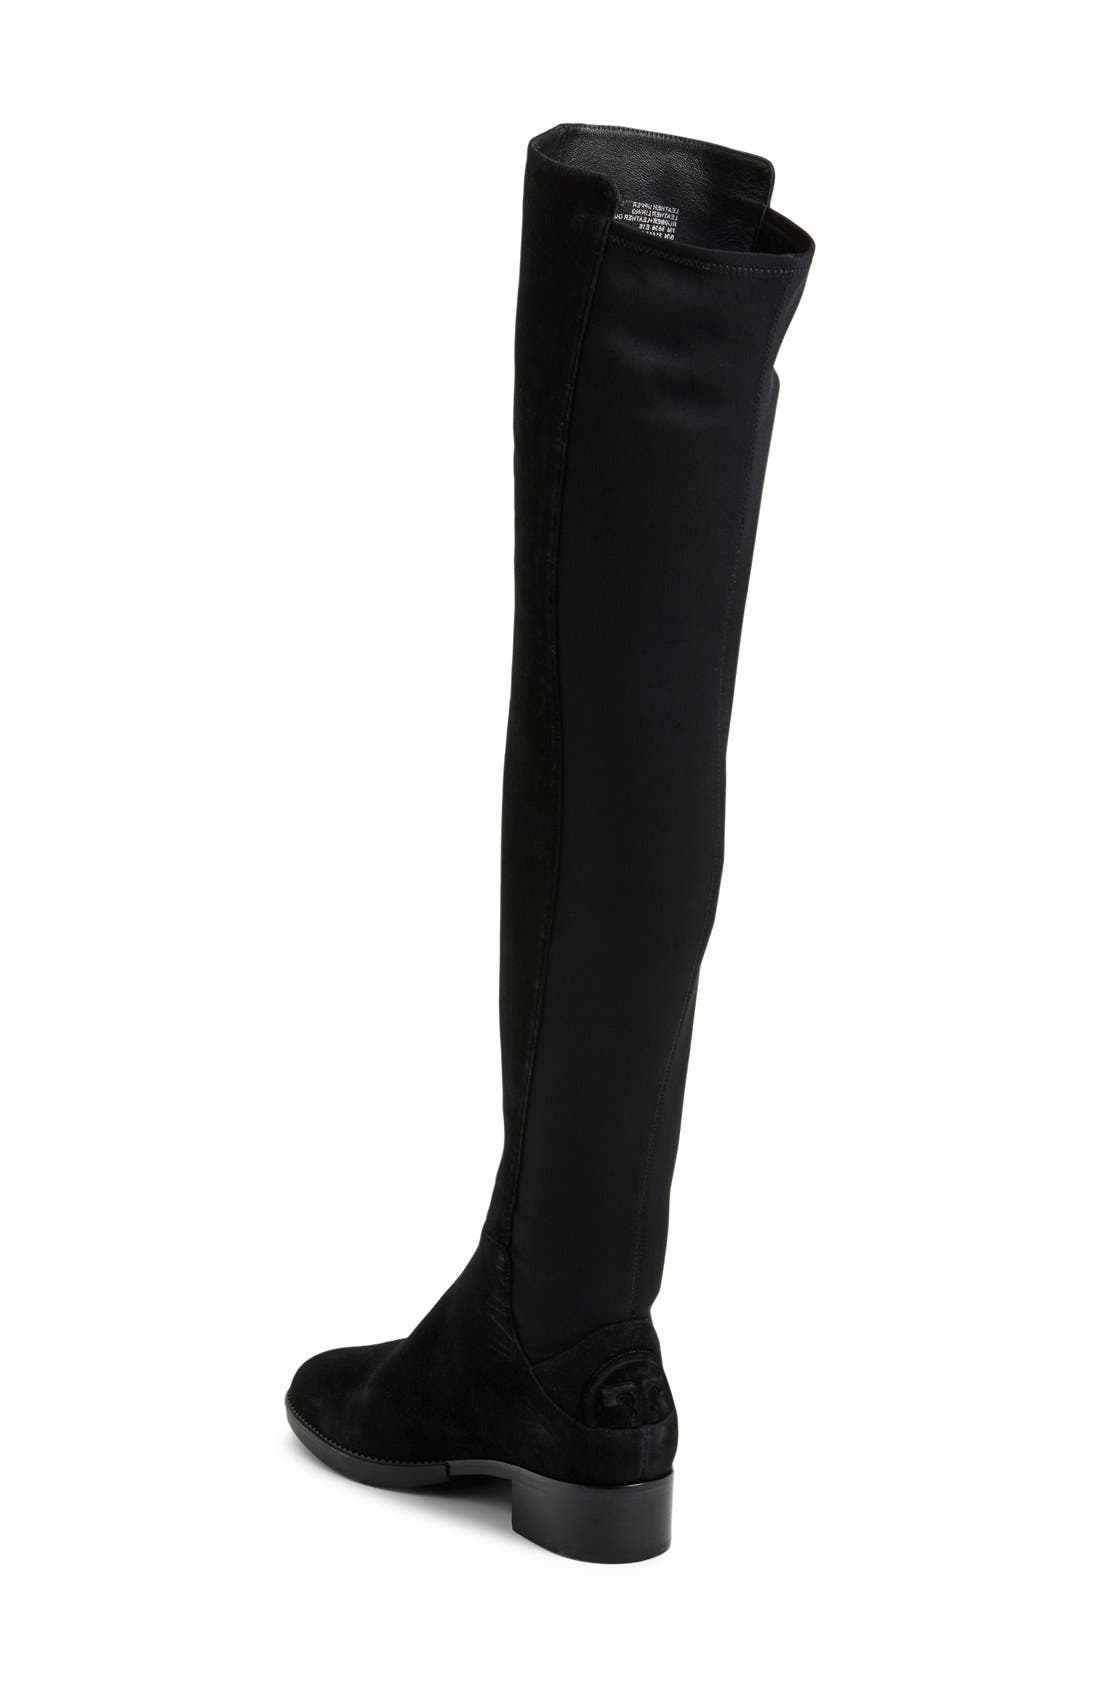 TORY BURCH,                             'Caitlin' Over the Knee Boot,                             Alternate thumbnail 2, color,                             001